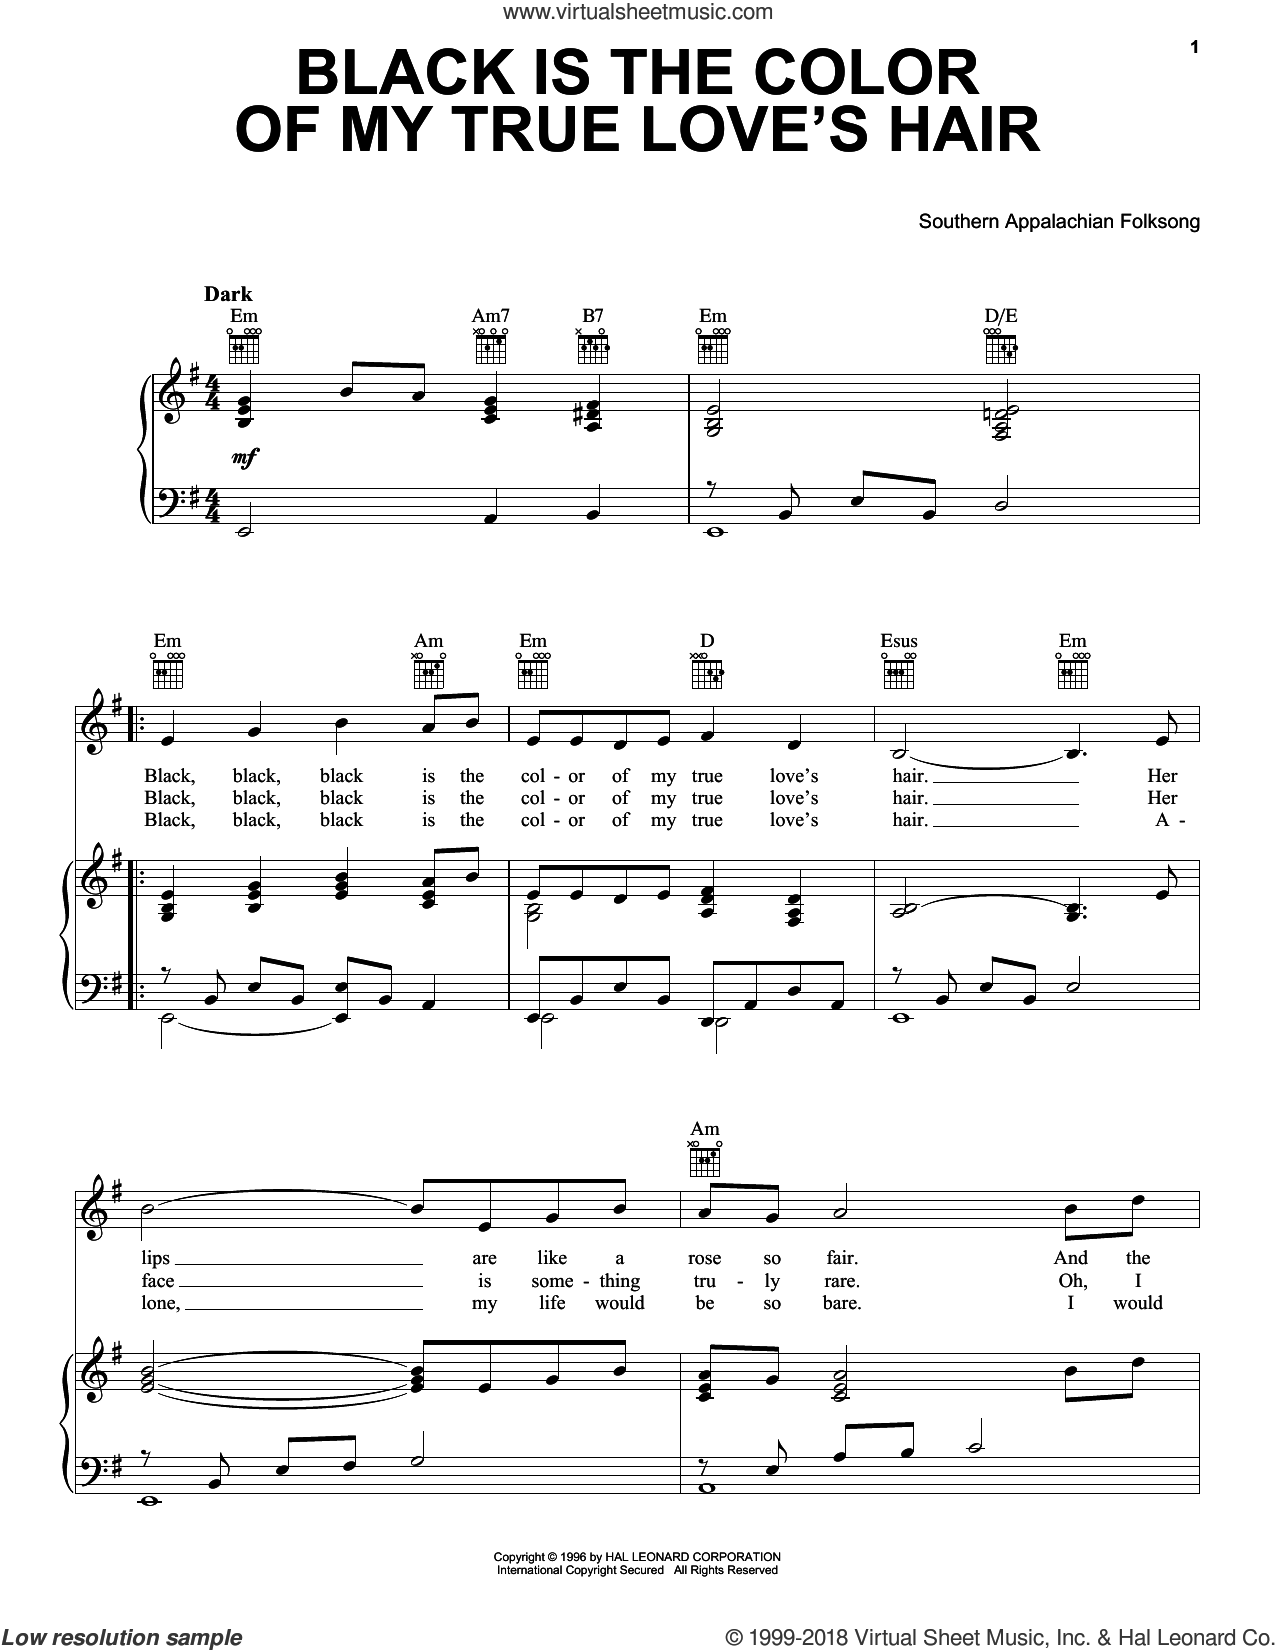 Black Is the Color of My True Love's Hair sheet music for voice, piano or guitar by Southern Appalachian Folksong. Score Image Preview.